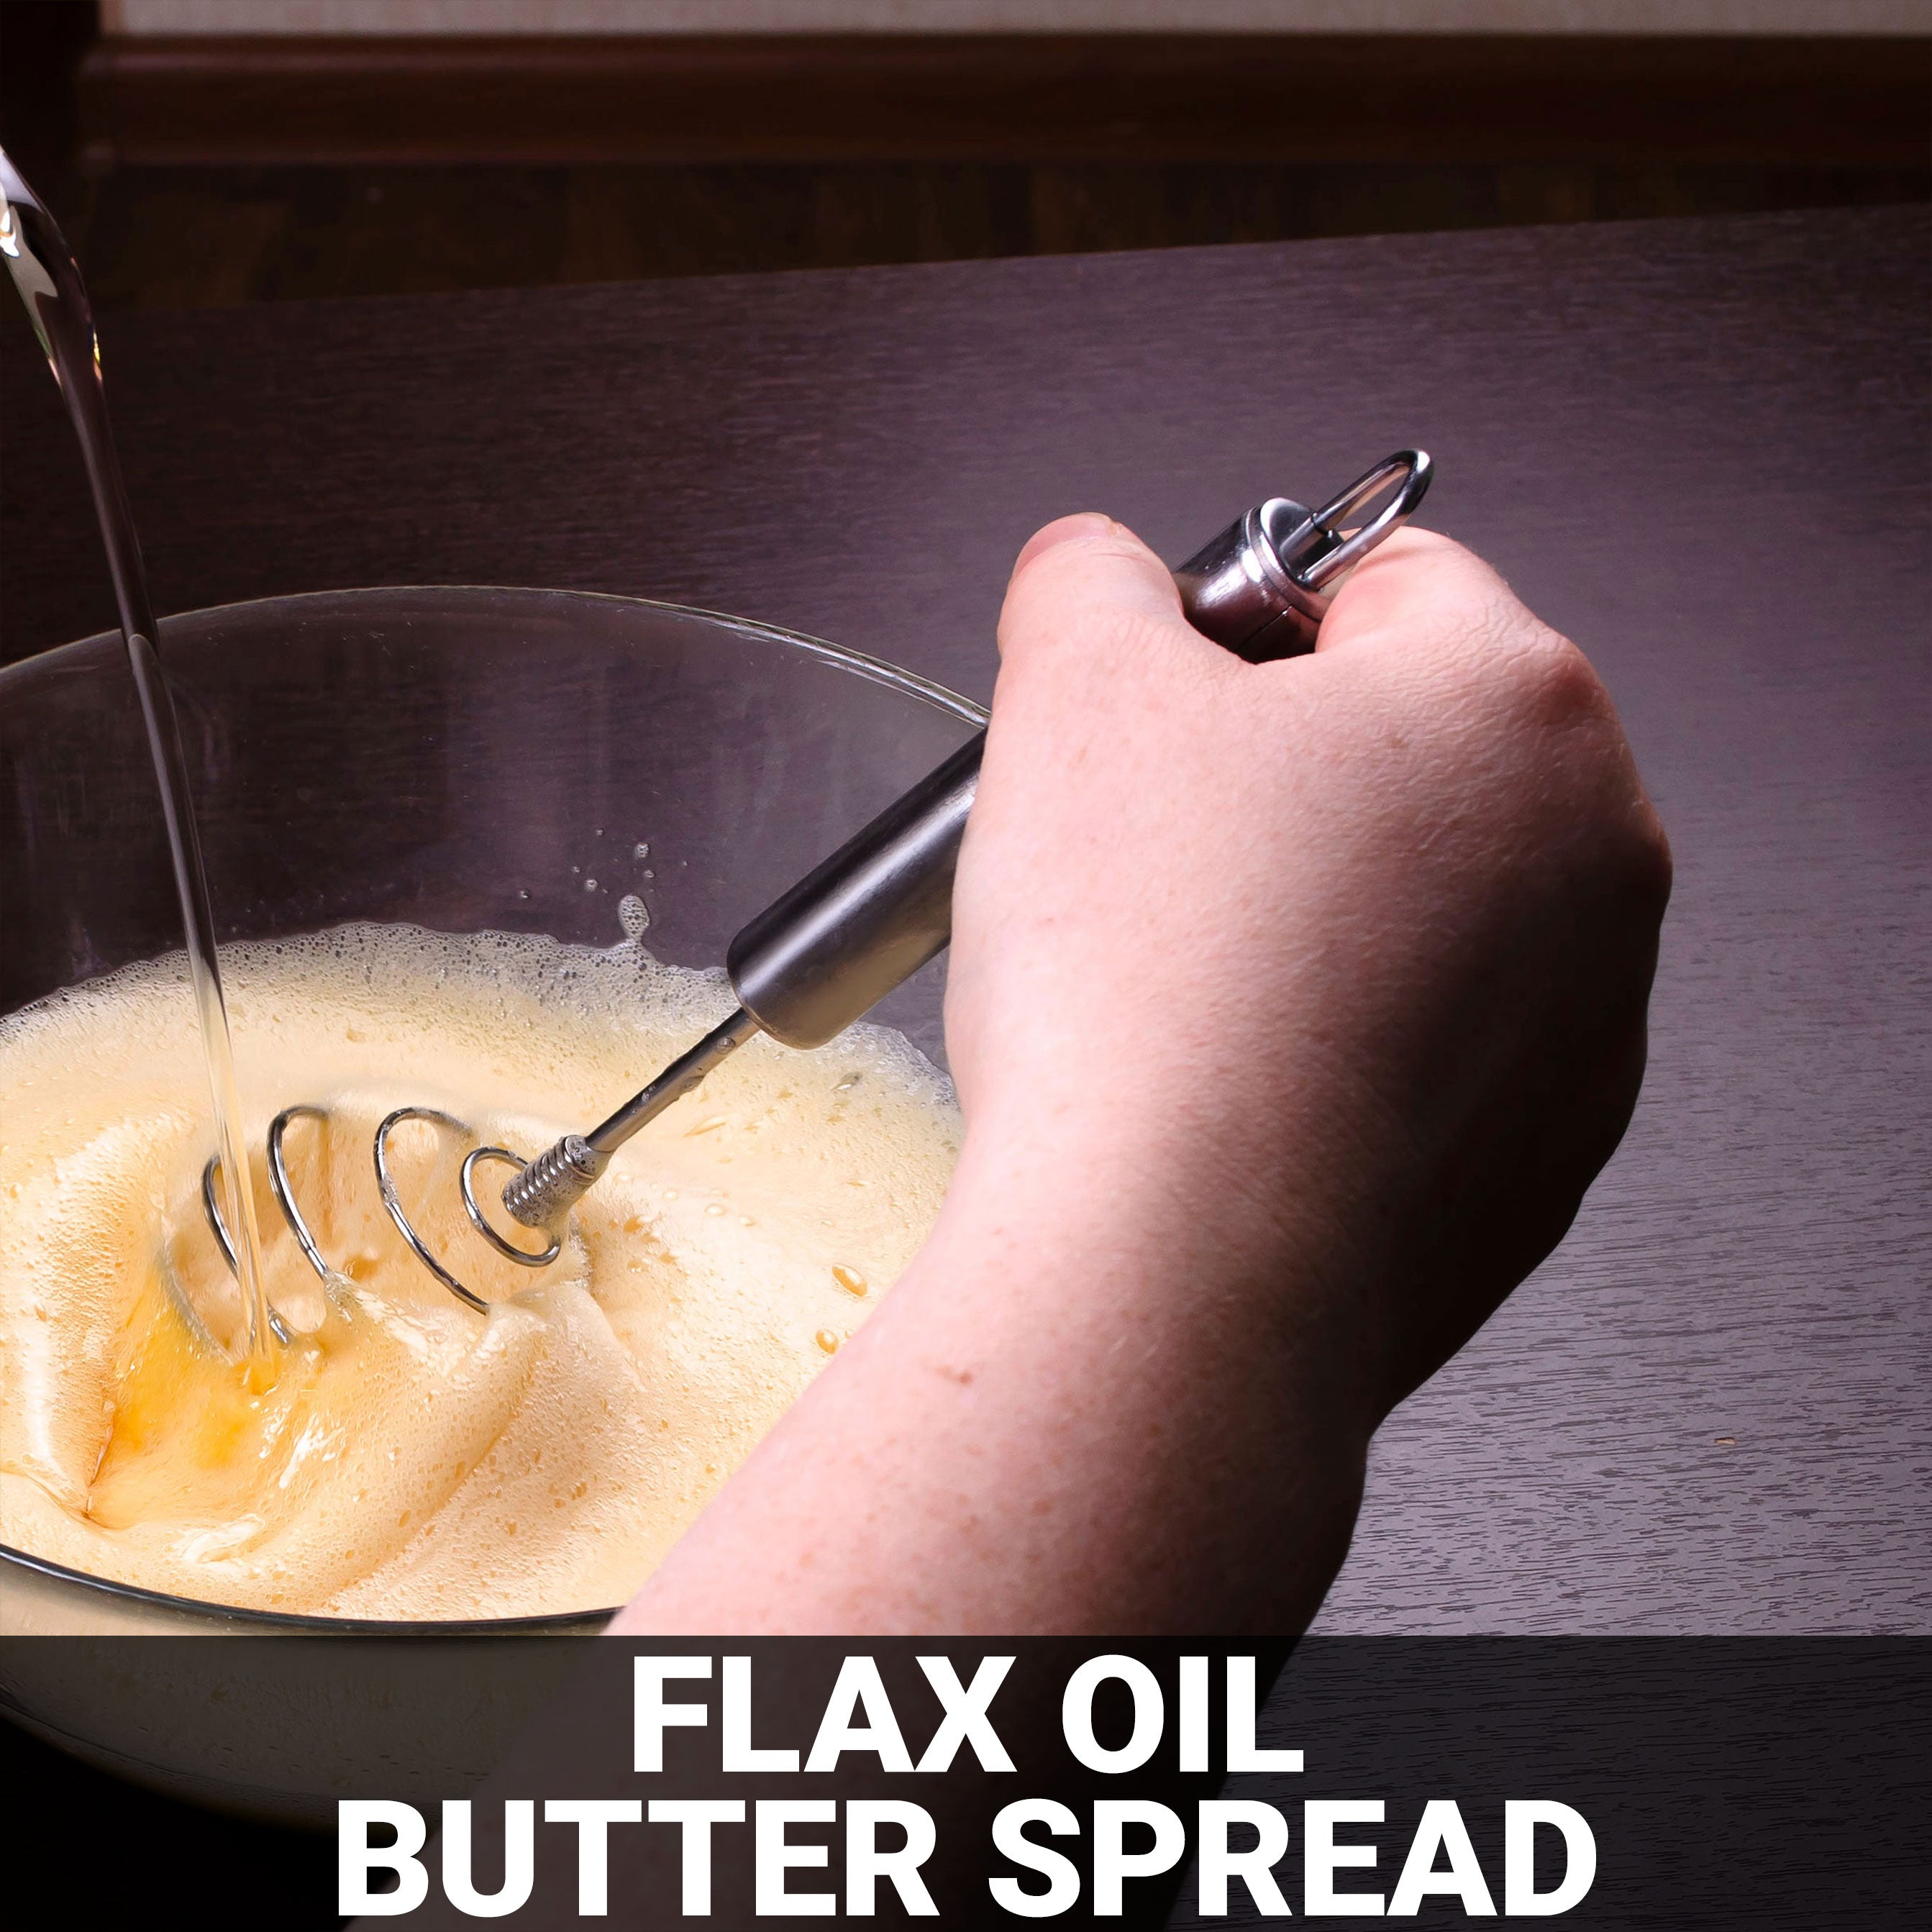 Flax Oil Butter Spread Recipe - Foods Alive